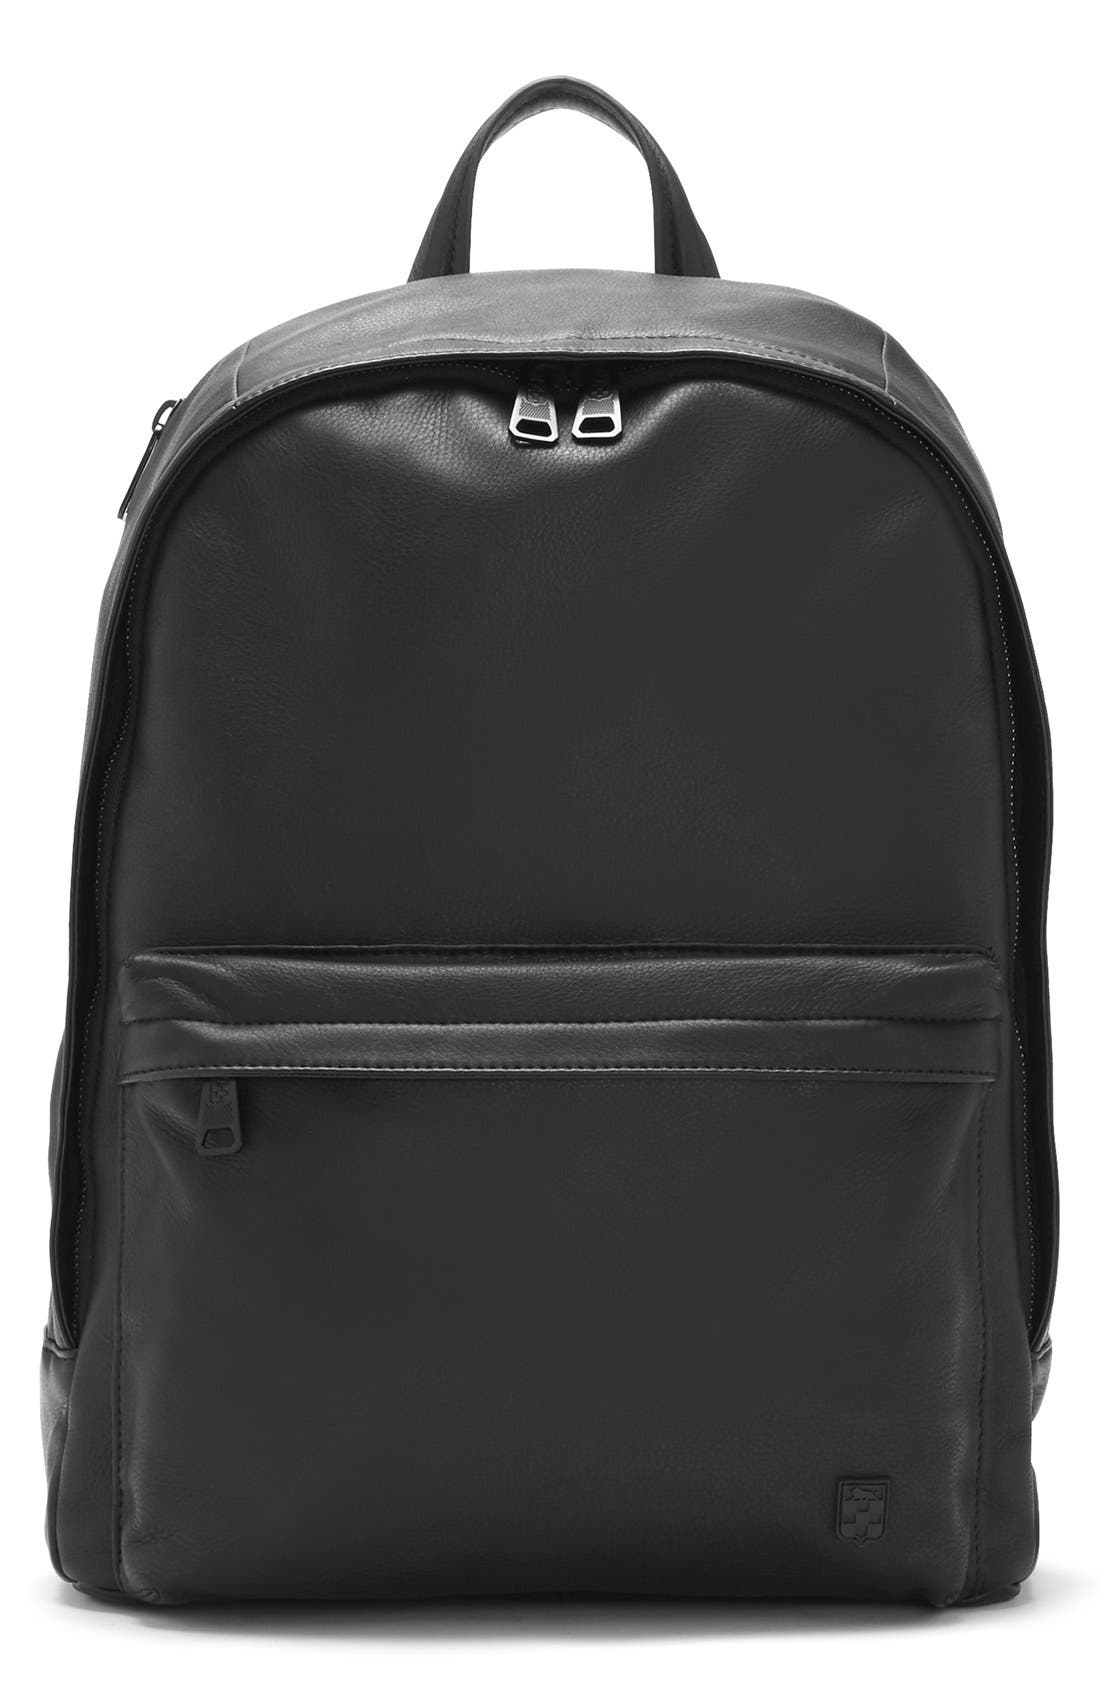 Vince Camuto 'Tolve' Leather Backpack